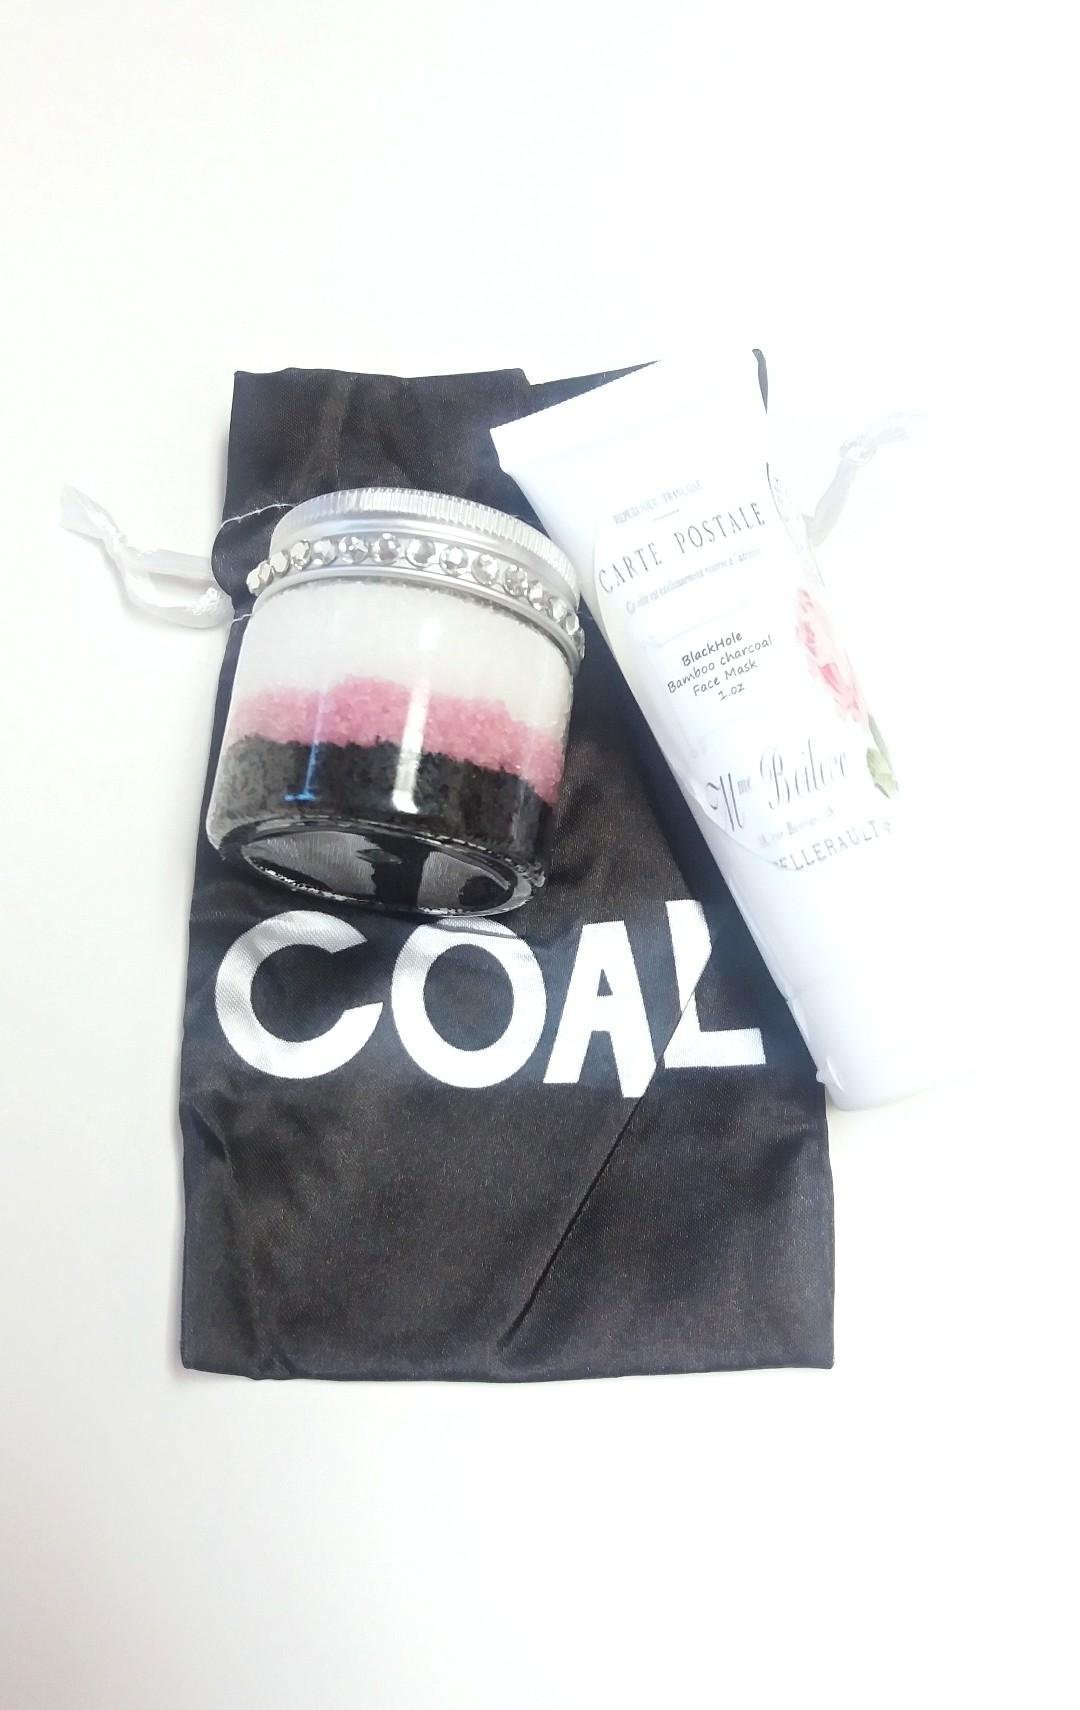 Charcoal face mask, charcoal sugar scrub with coal pouch christmas gift, treatments and masks